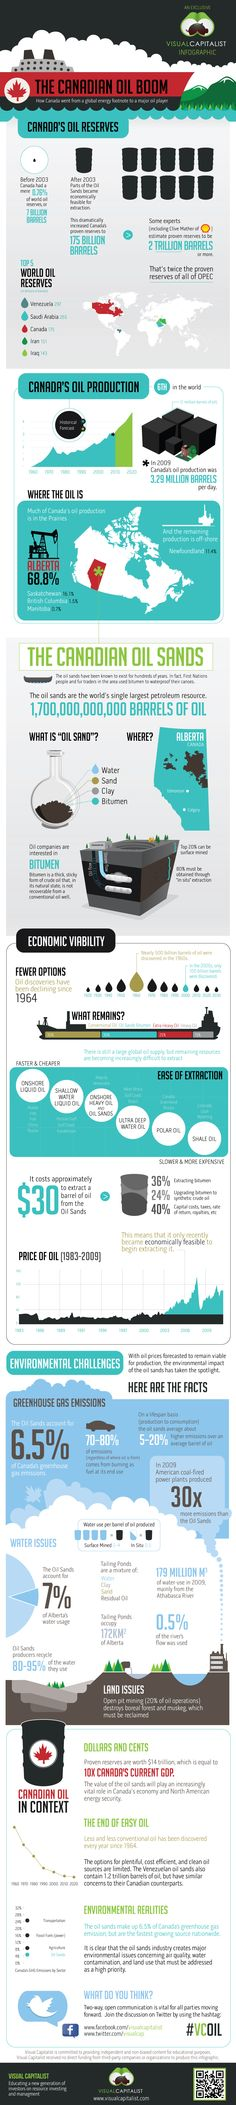 [The Canadian Oil Boom]  http://visual.ly/canadian-oil-boom